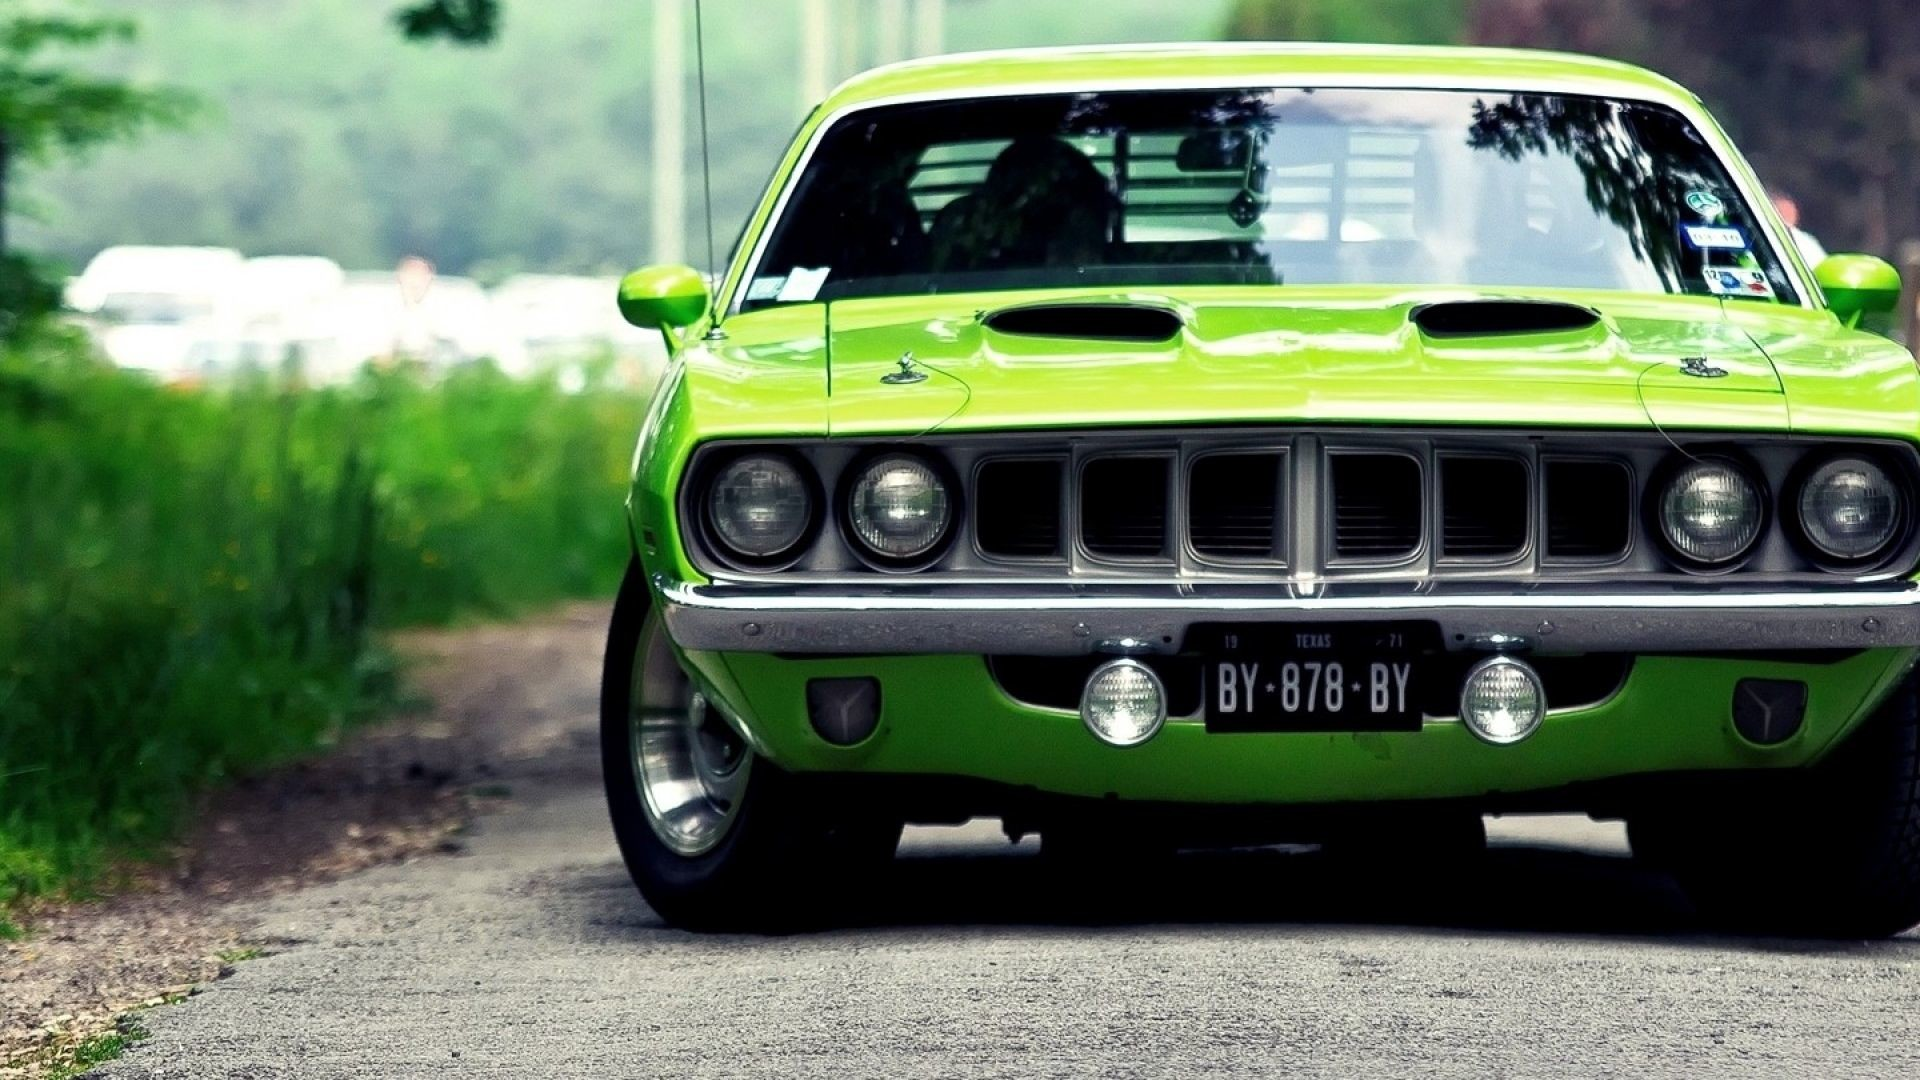 Car Wallpaper For Computer Awesome Amazing Cool Car Wallpaper Pc Wallpaper  Wallpaperlepi .